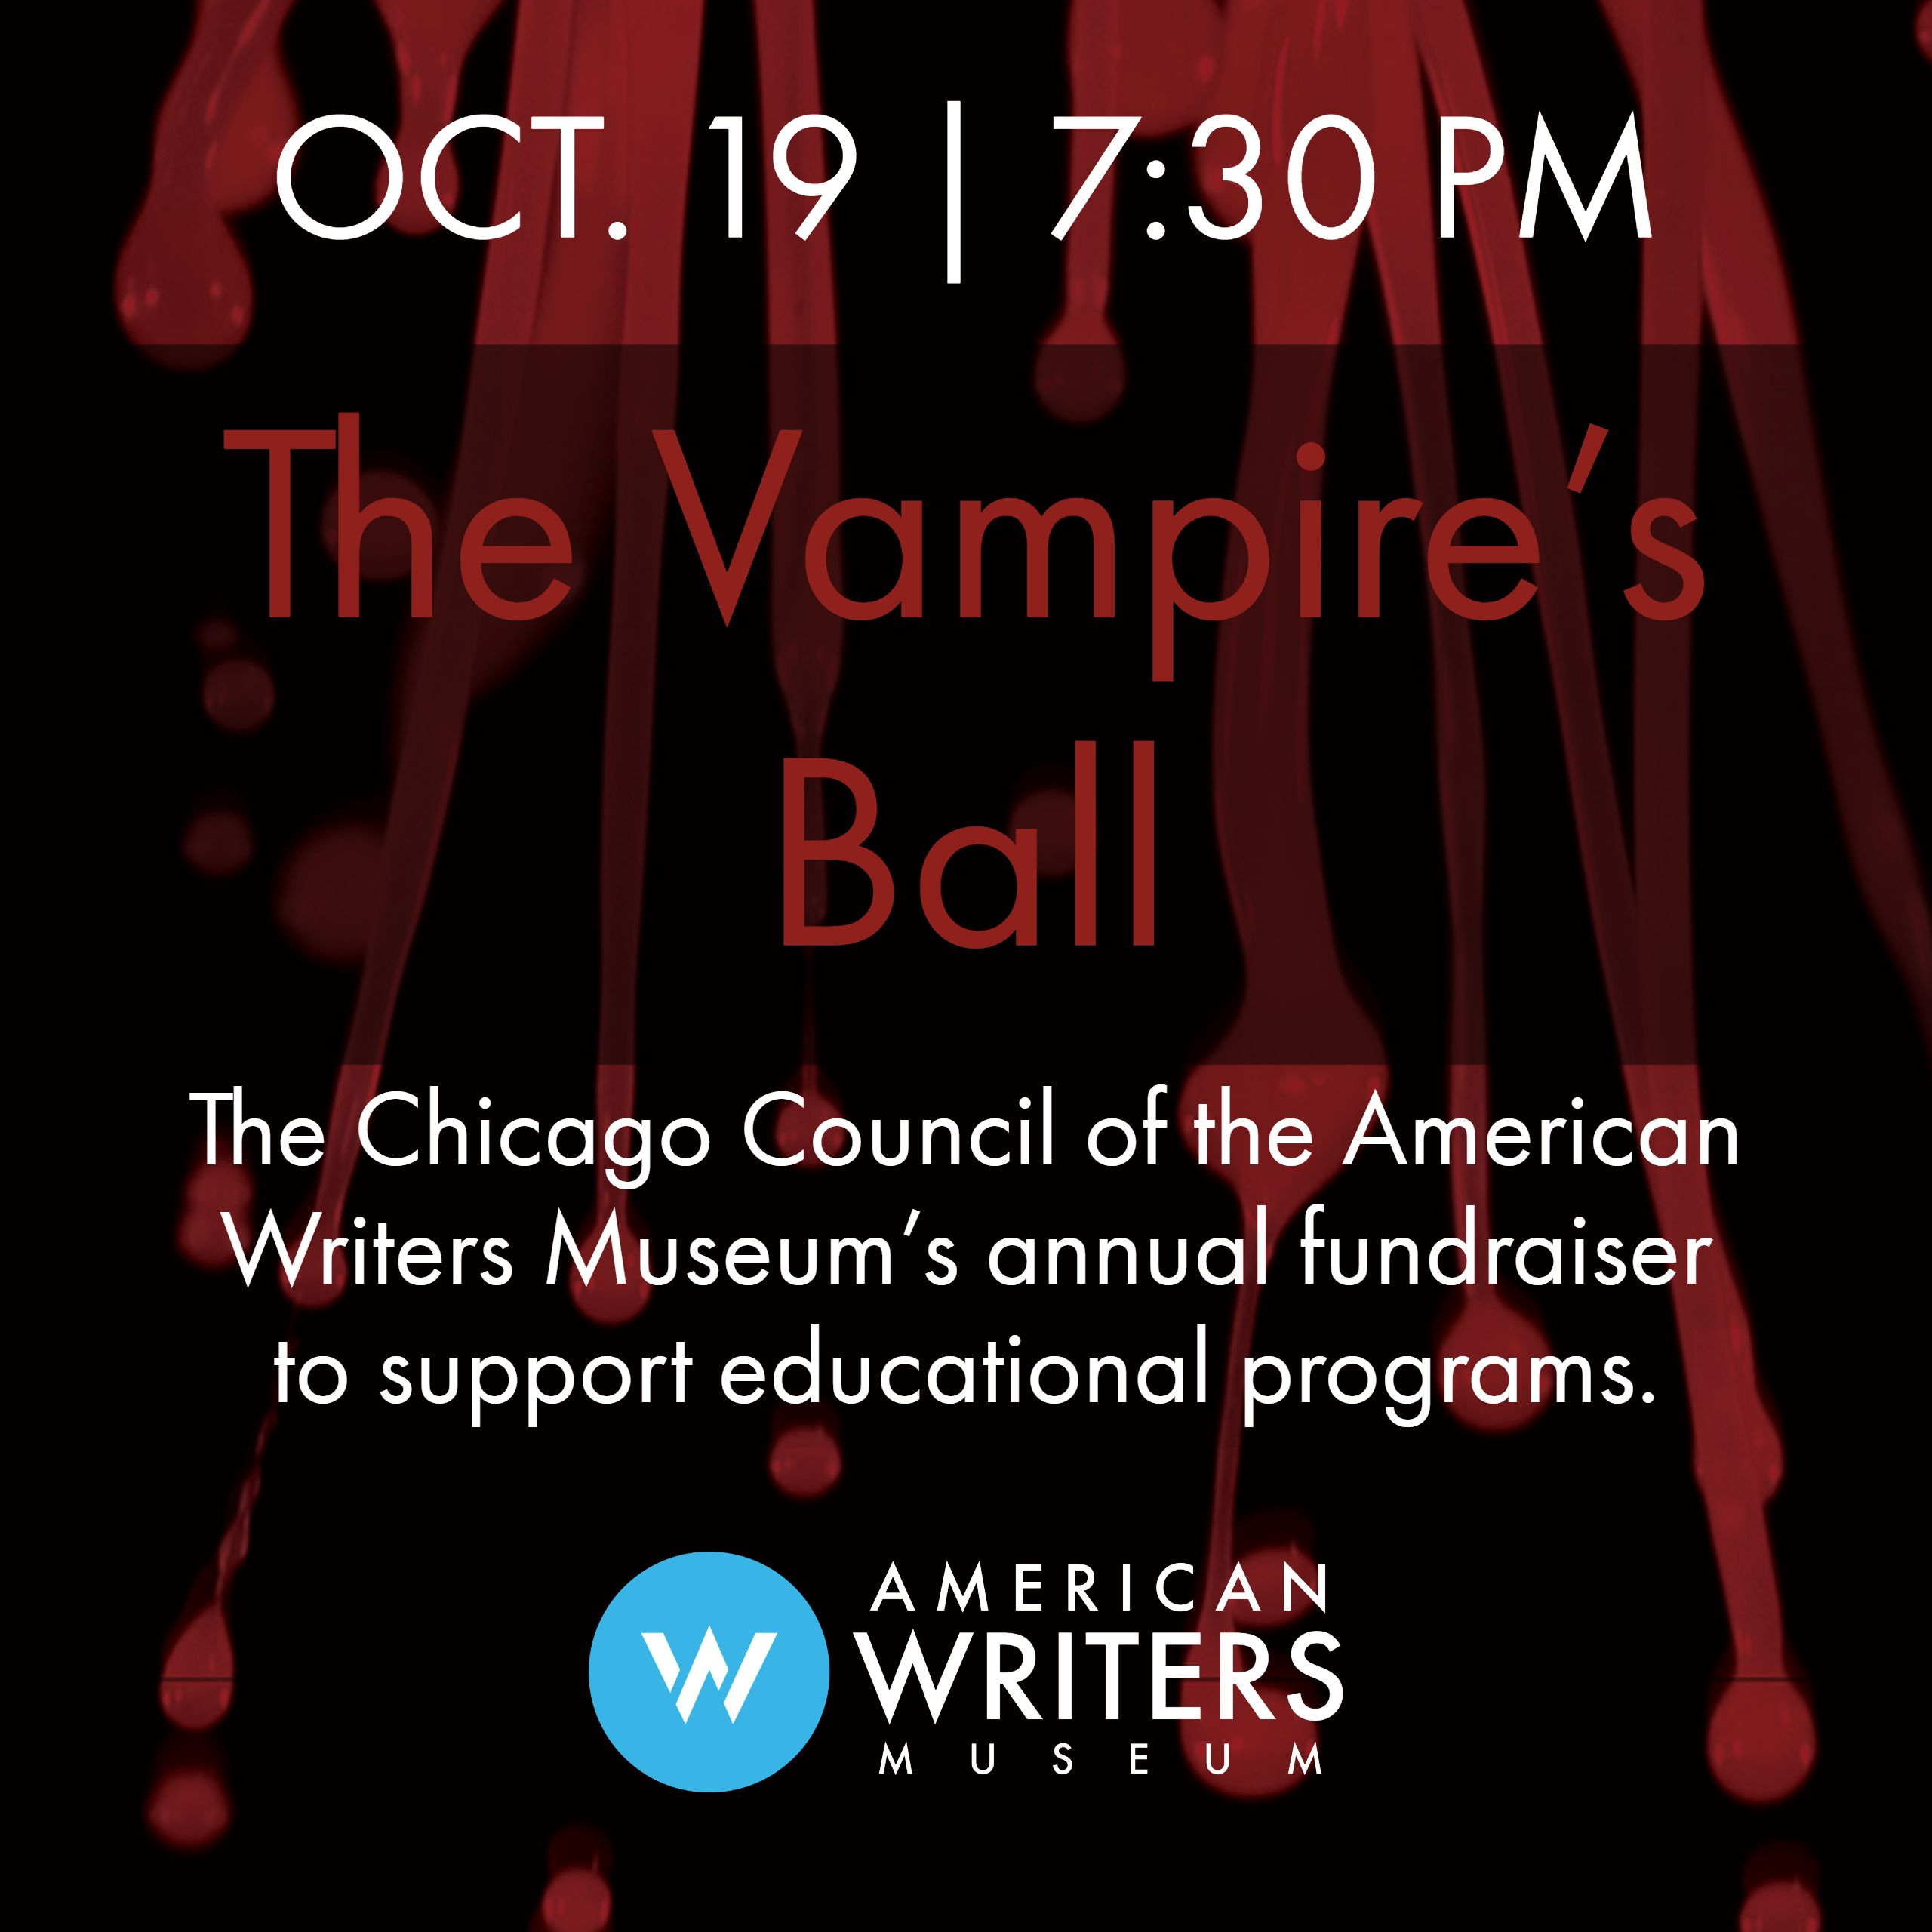 The Chicago Council for the American Writers Museum is hosting a vampire-themed fundraiser in October to raise funds for educational programs